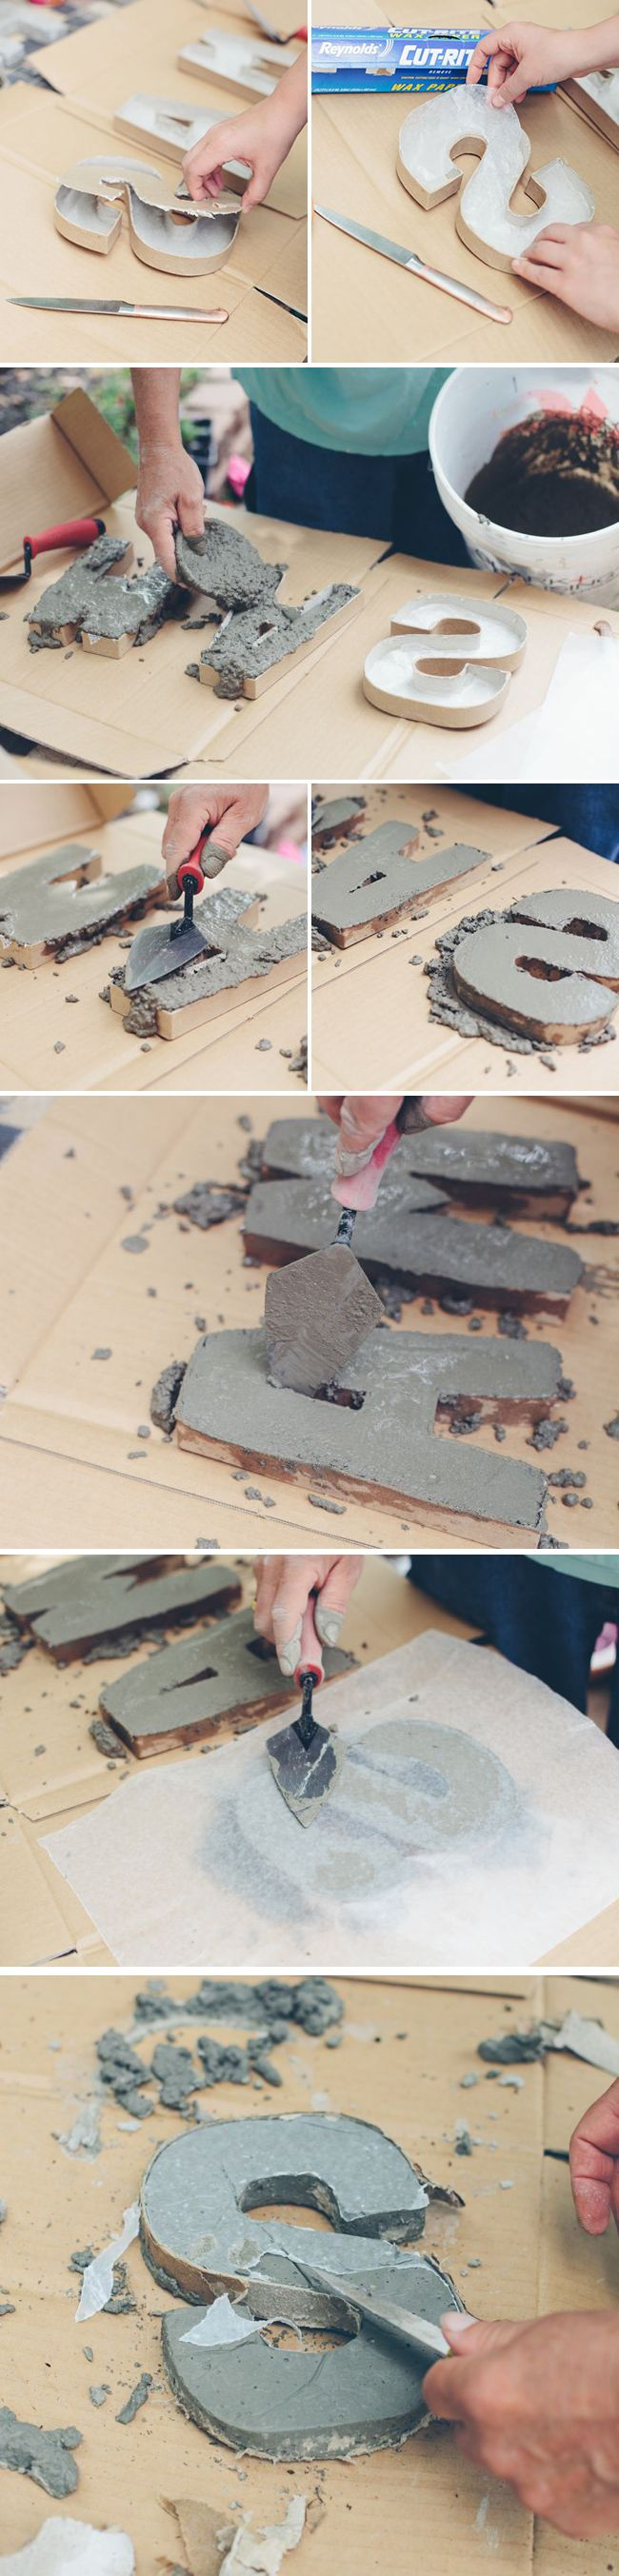 How to Make Cement Letters DIY - these would be fun for outside decor